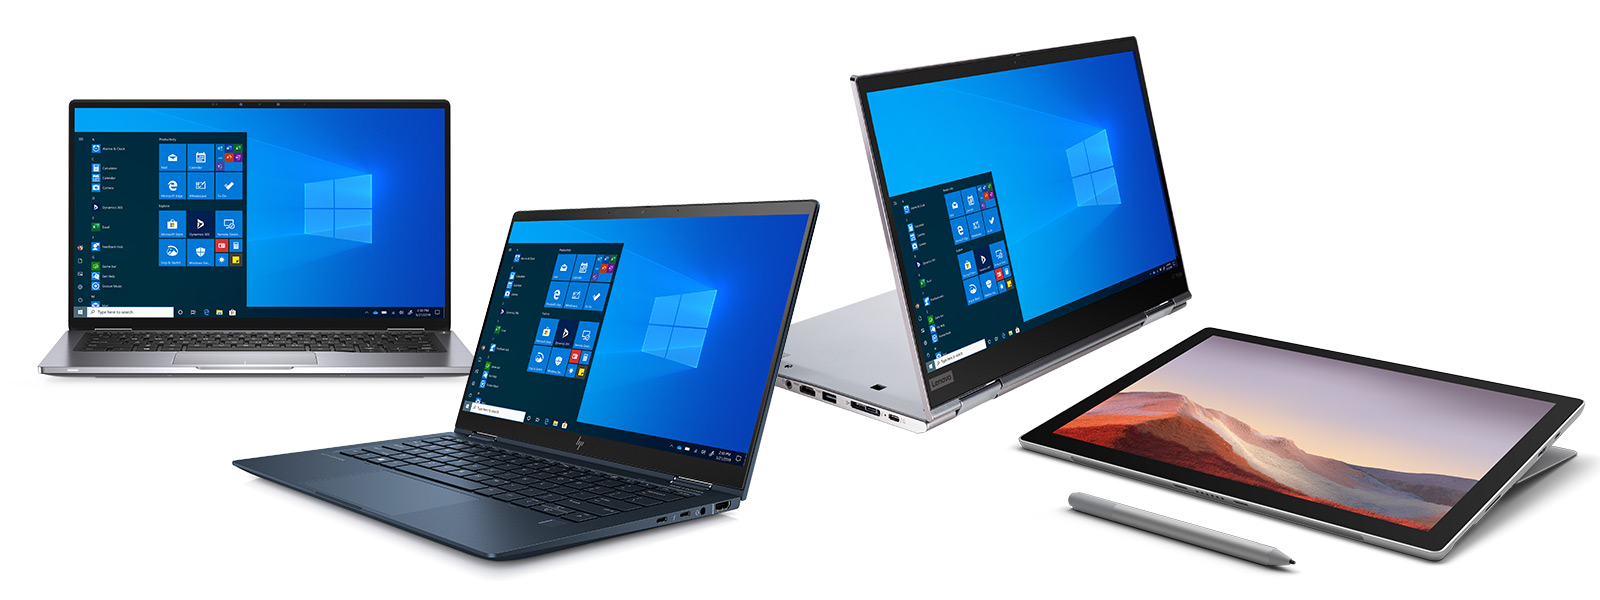 Four Windows 10 Pro computers at different angles